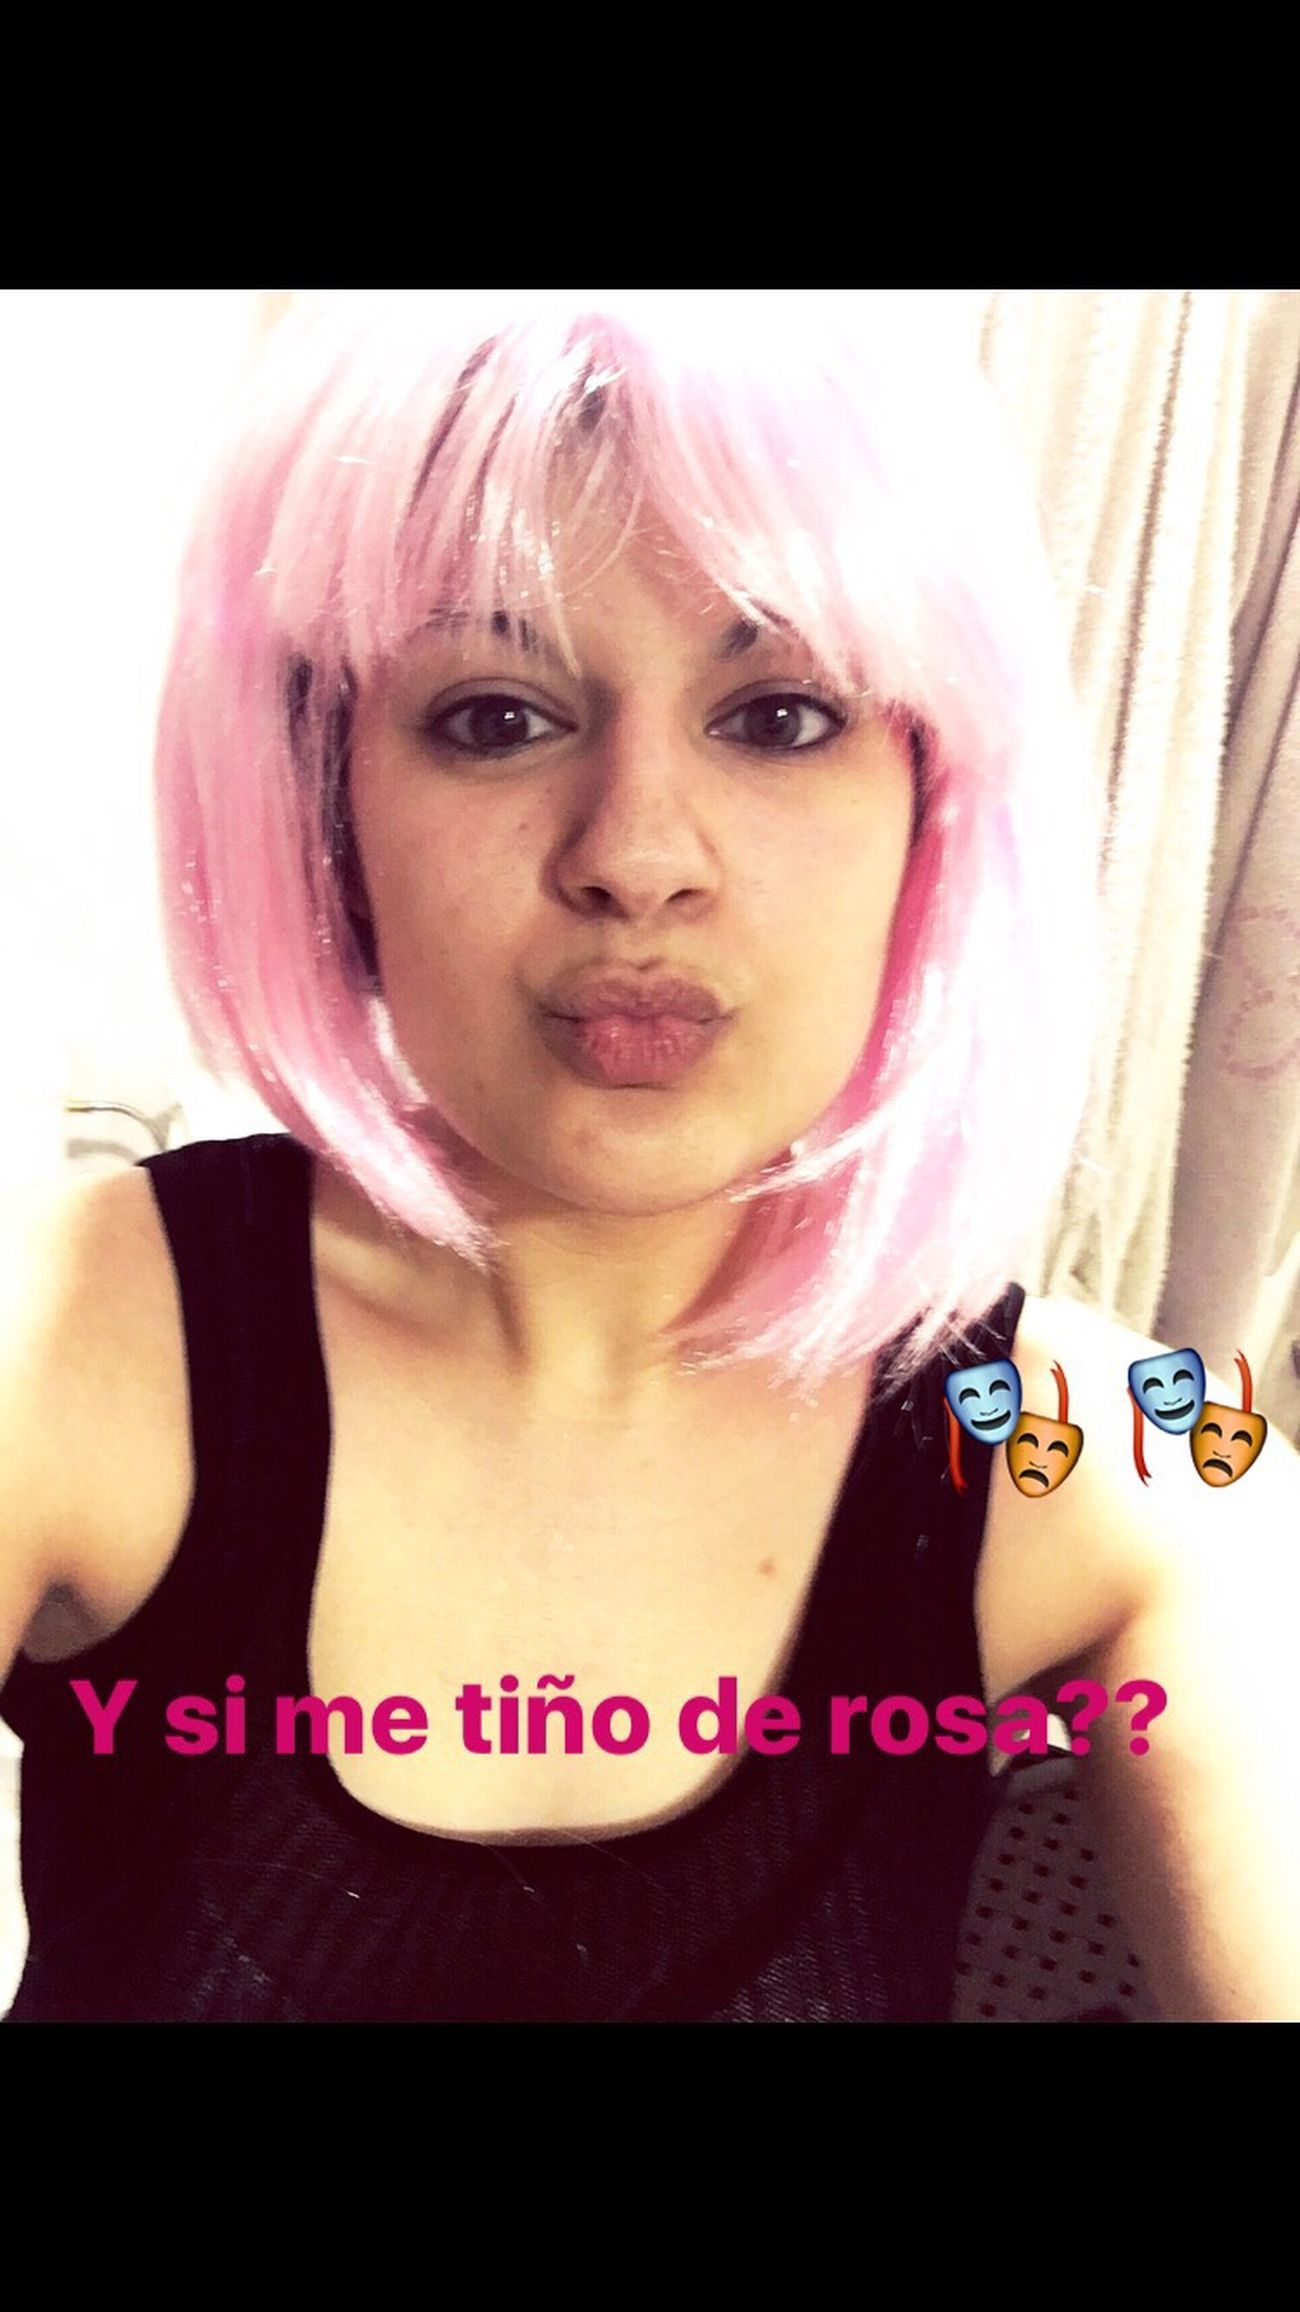 Pues no me queda tan mal el pelo rosa oyee🙄🙄😂 Color Portrait Carnival Photooftheday Day Portrait Hello World Selfie ✌ Photo That's Me Enjoying Life Check This Out Funny Taking Photos Beauty Kiss Today's Hot Look Selfportrait Bestoftheday Girl Hanging Out EyeEm Best Shots Looking At Camera Sexygirl